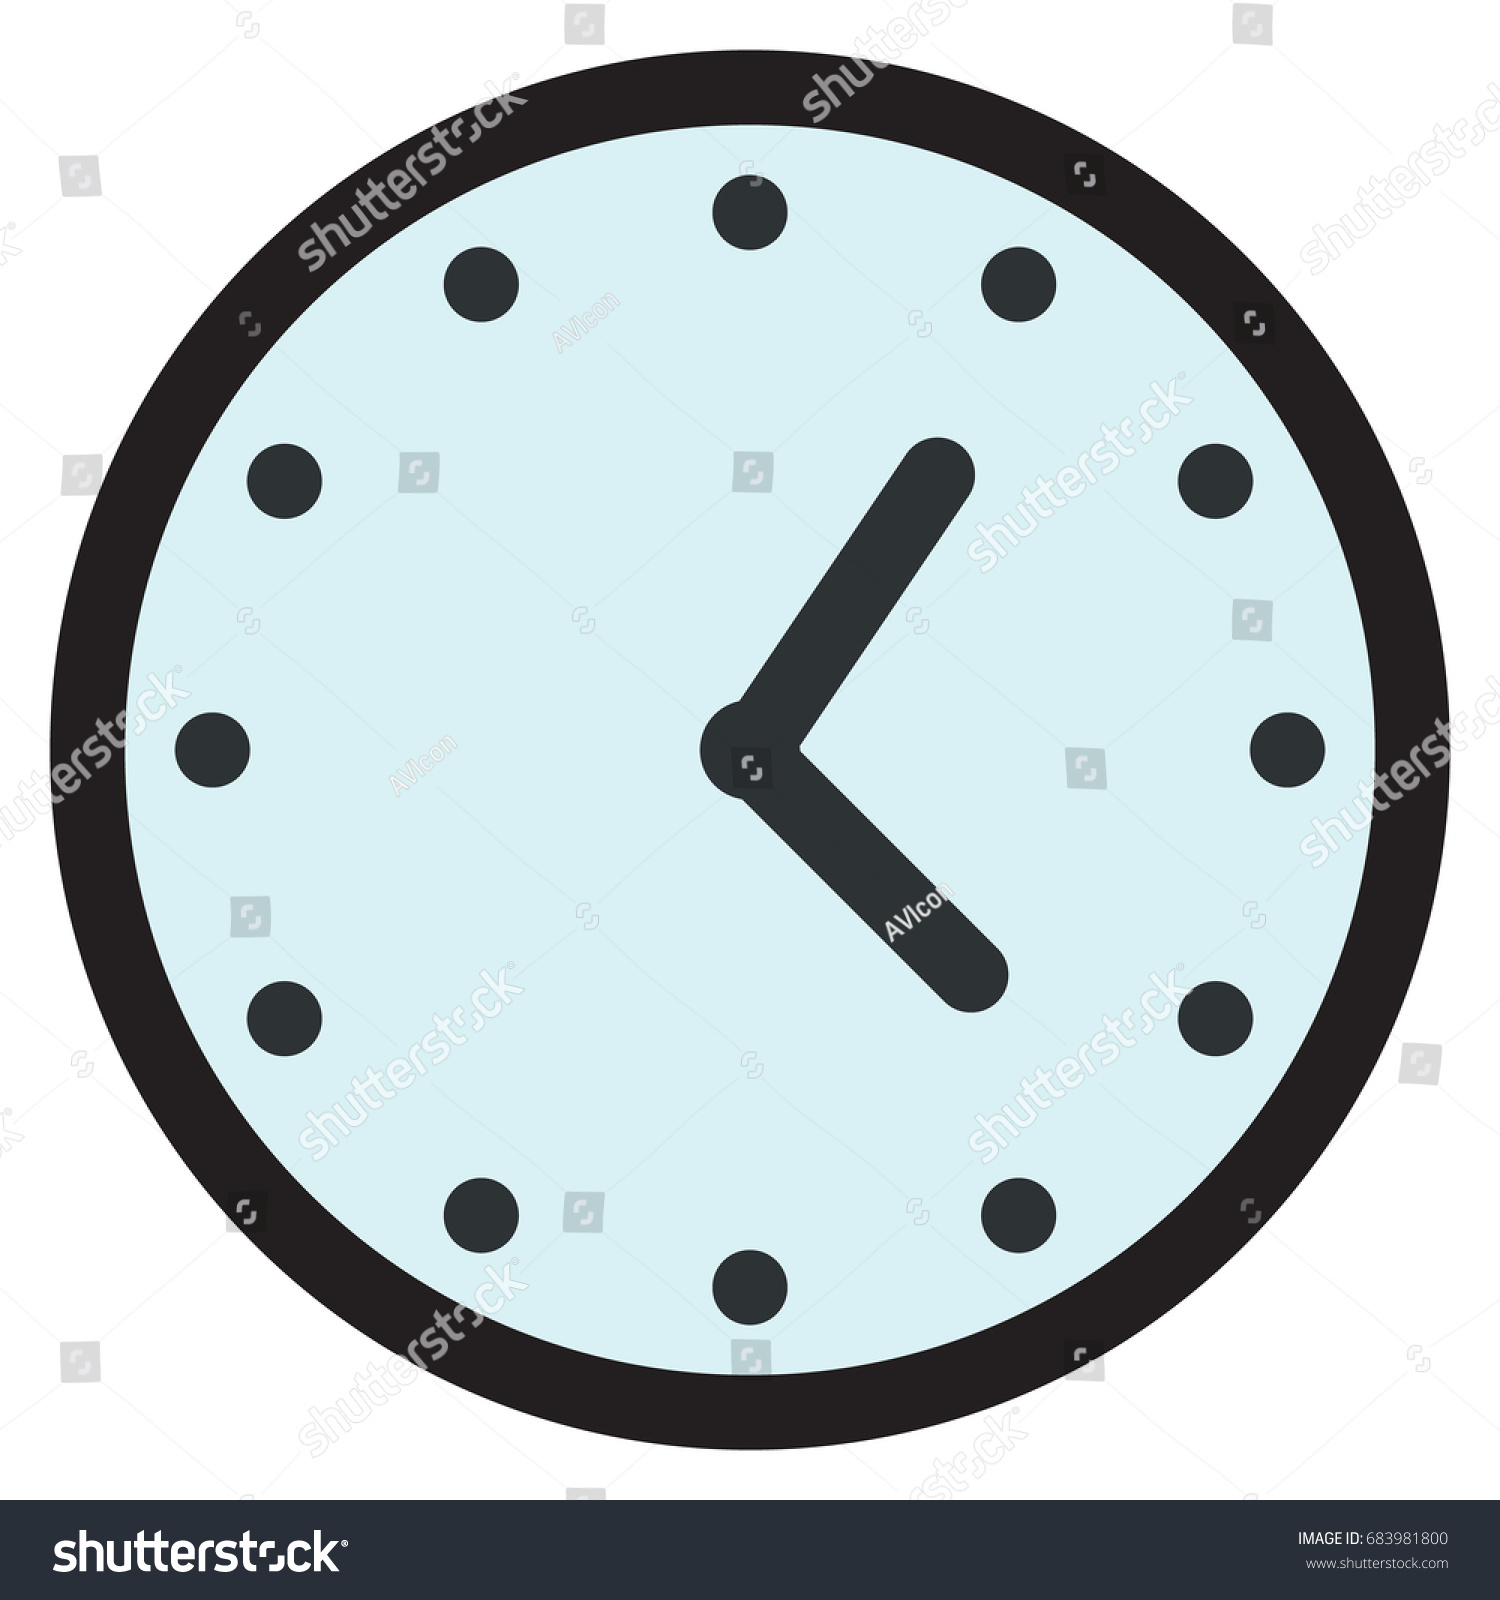 worksheet Analog Clock Face wall round analog clock face watch stock vector 683981800 icon illustration flat style design isolated on